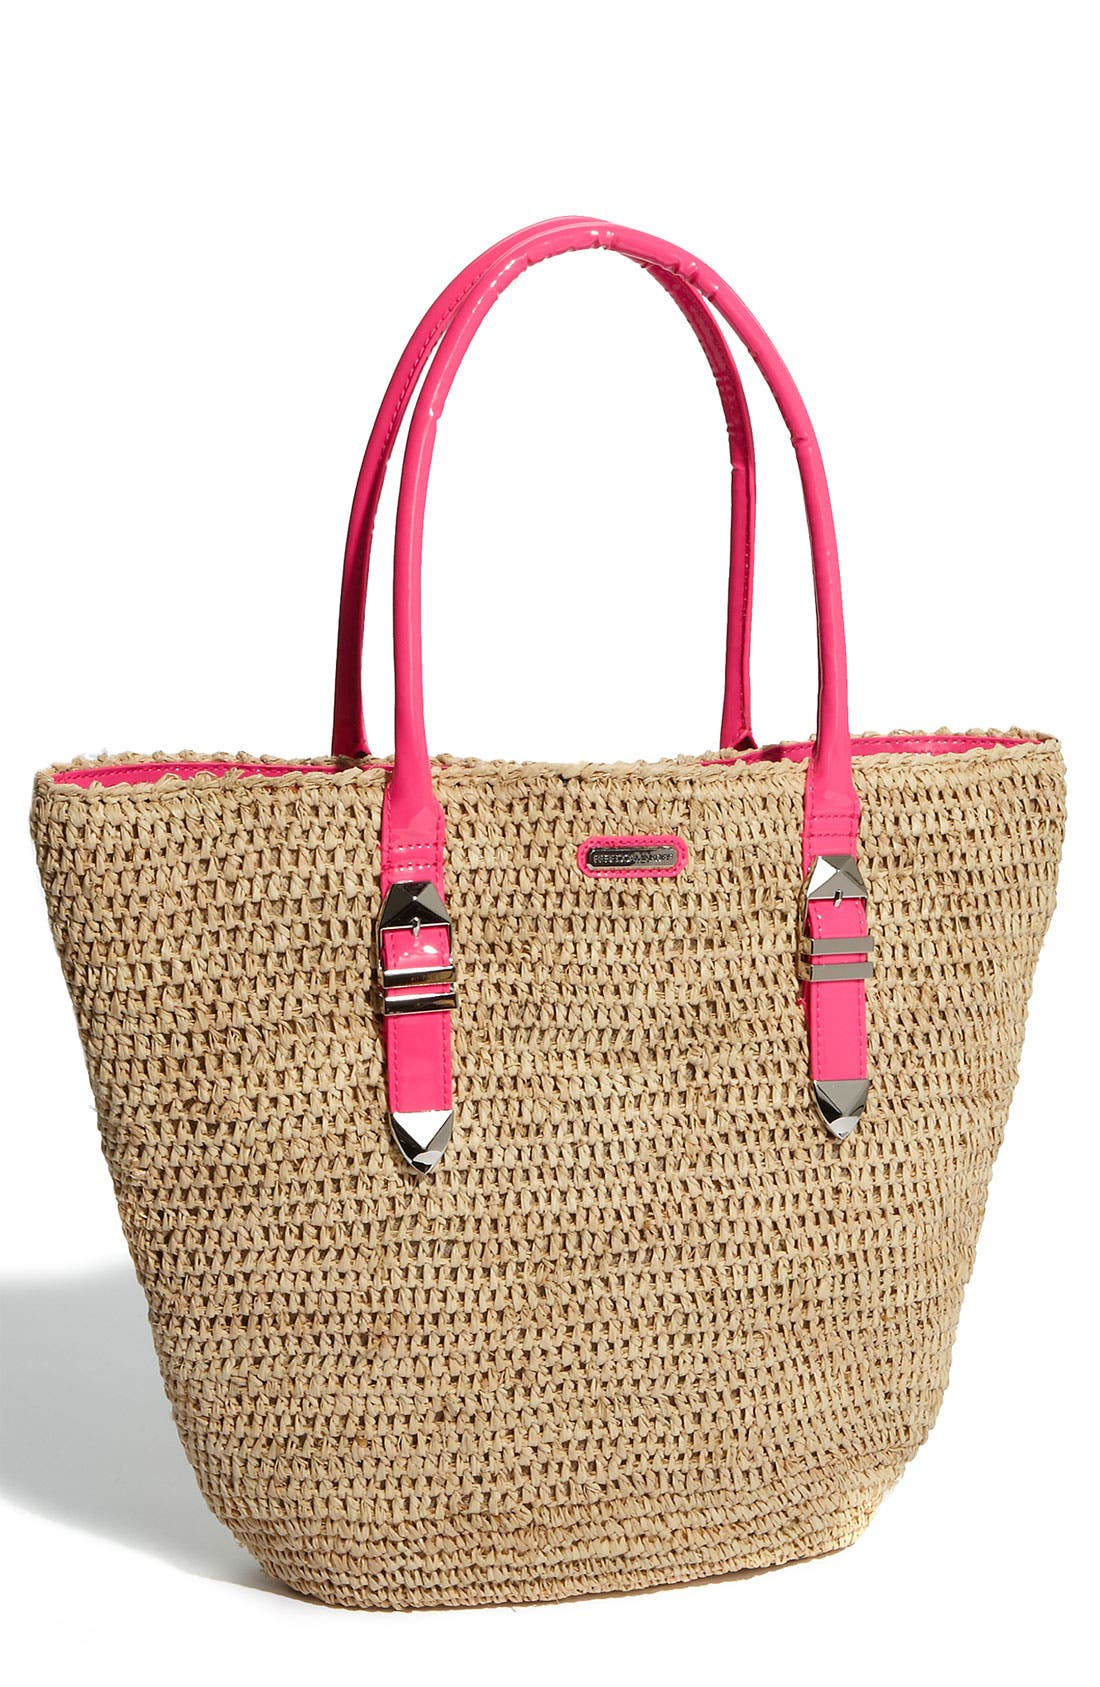 'Boyfriend' Tote,                         Main,                         color, Natural/Pink